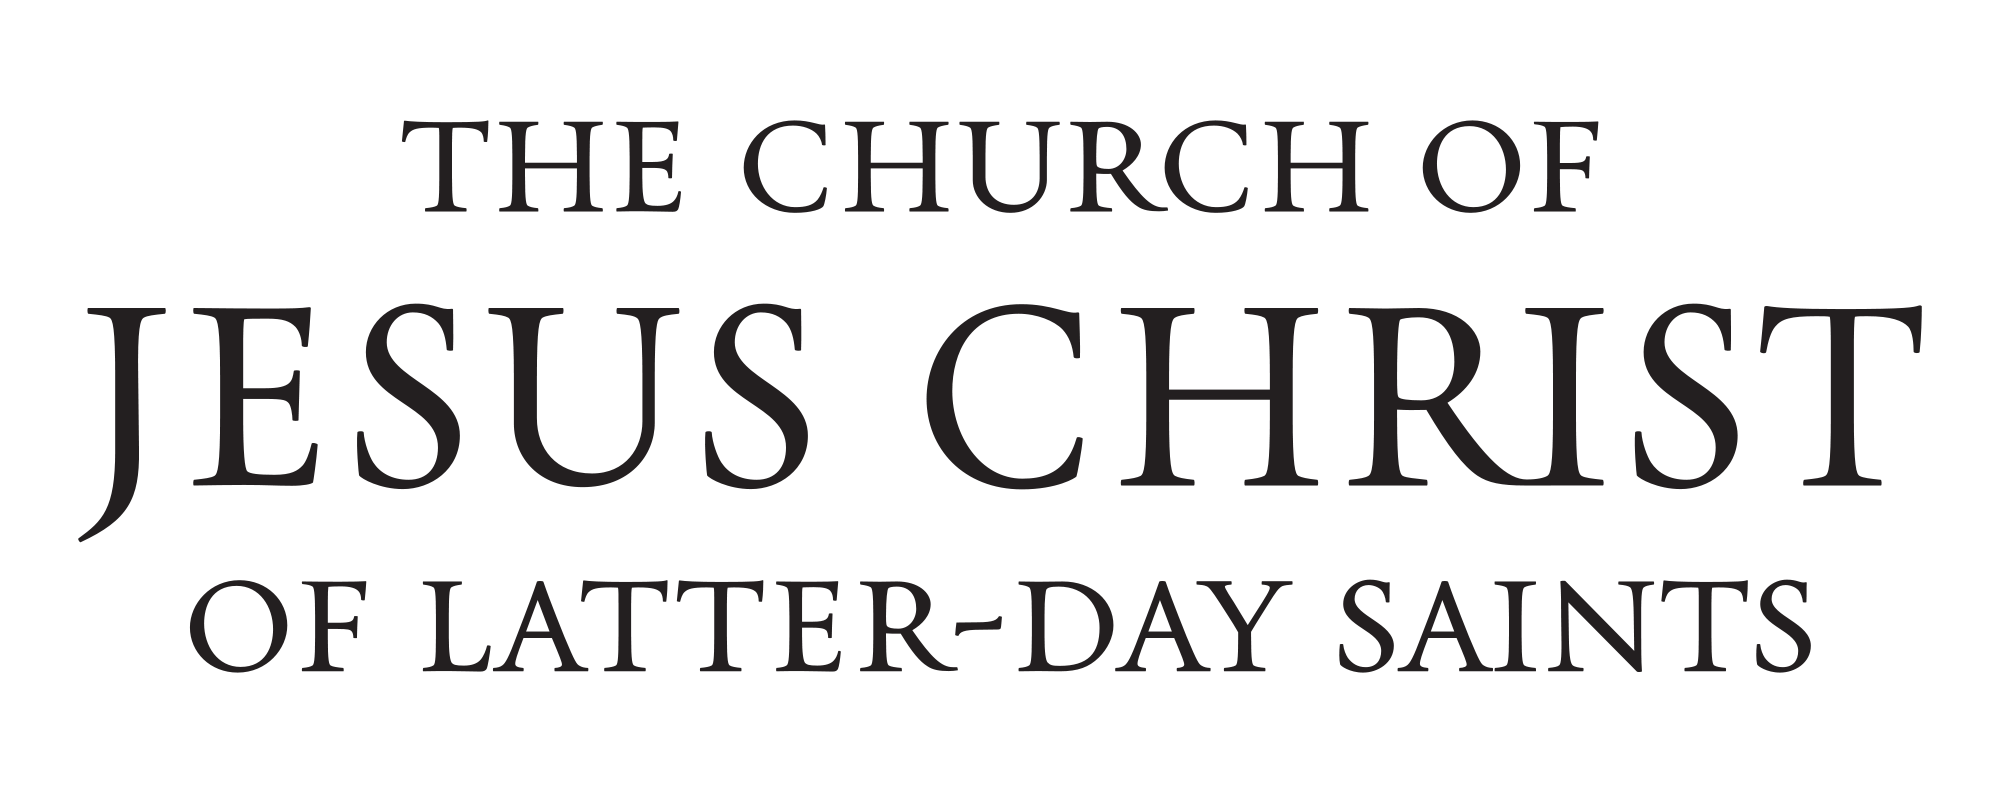 LDS logo.png